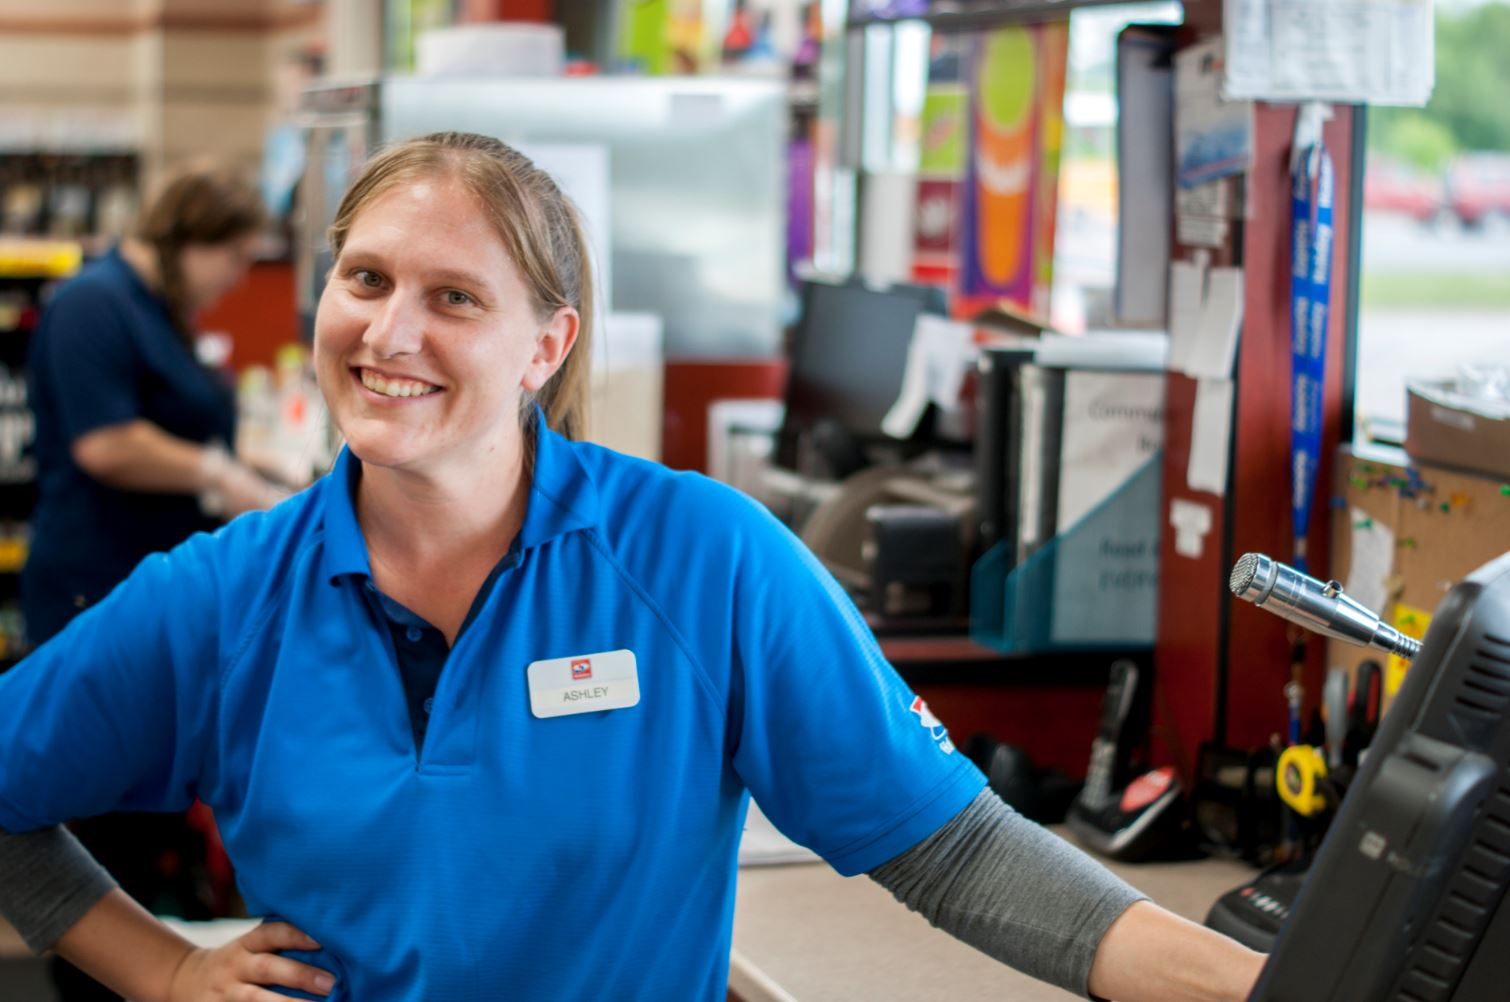 Holiday Clerk: New Ulm, MN